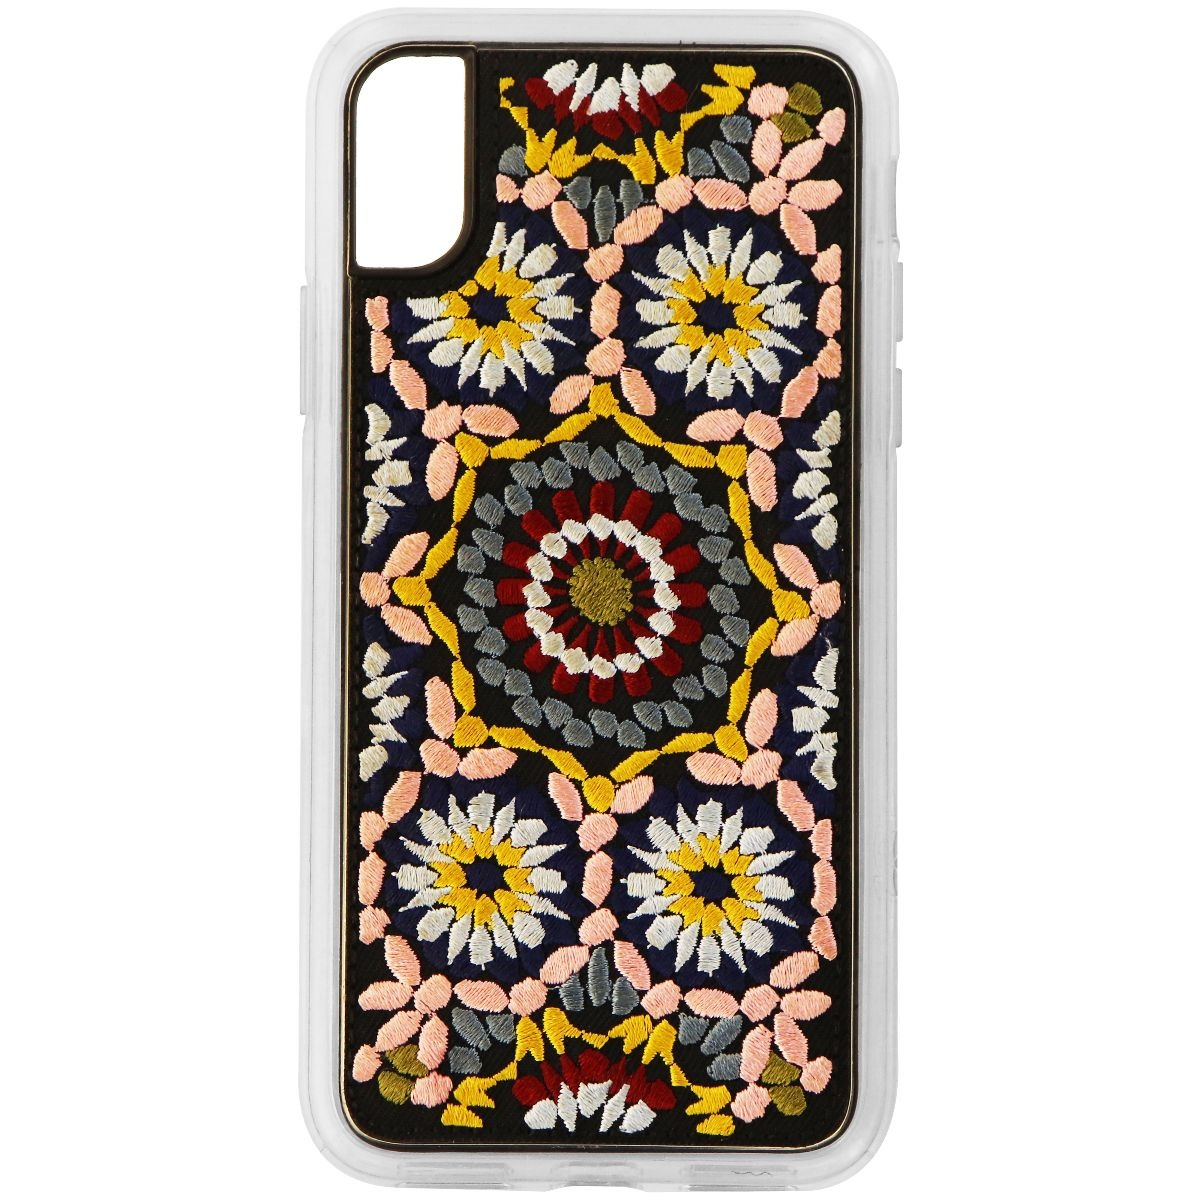 Zero Gravity Design Series Protective Case Cover for Apple iPhone X 10 - Casbah